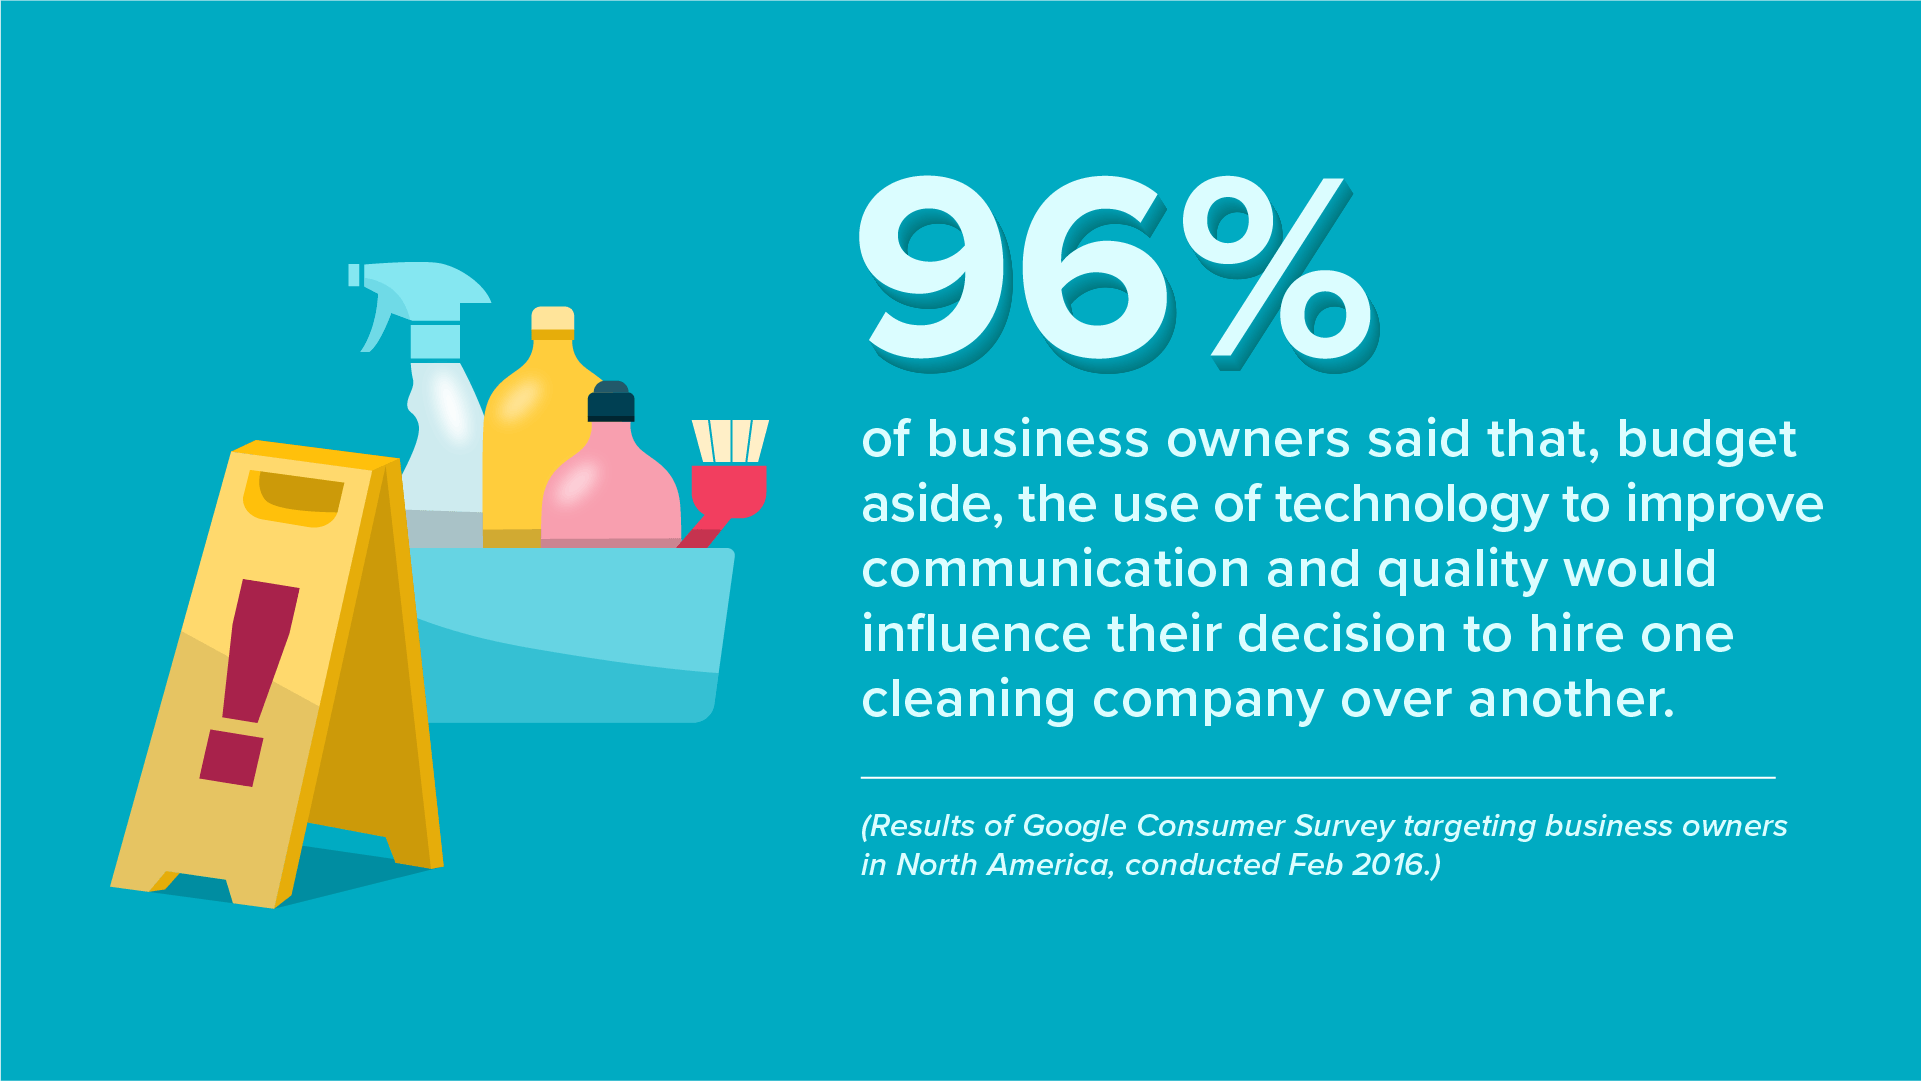 cleaning services statistics for business